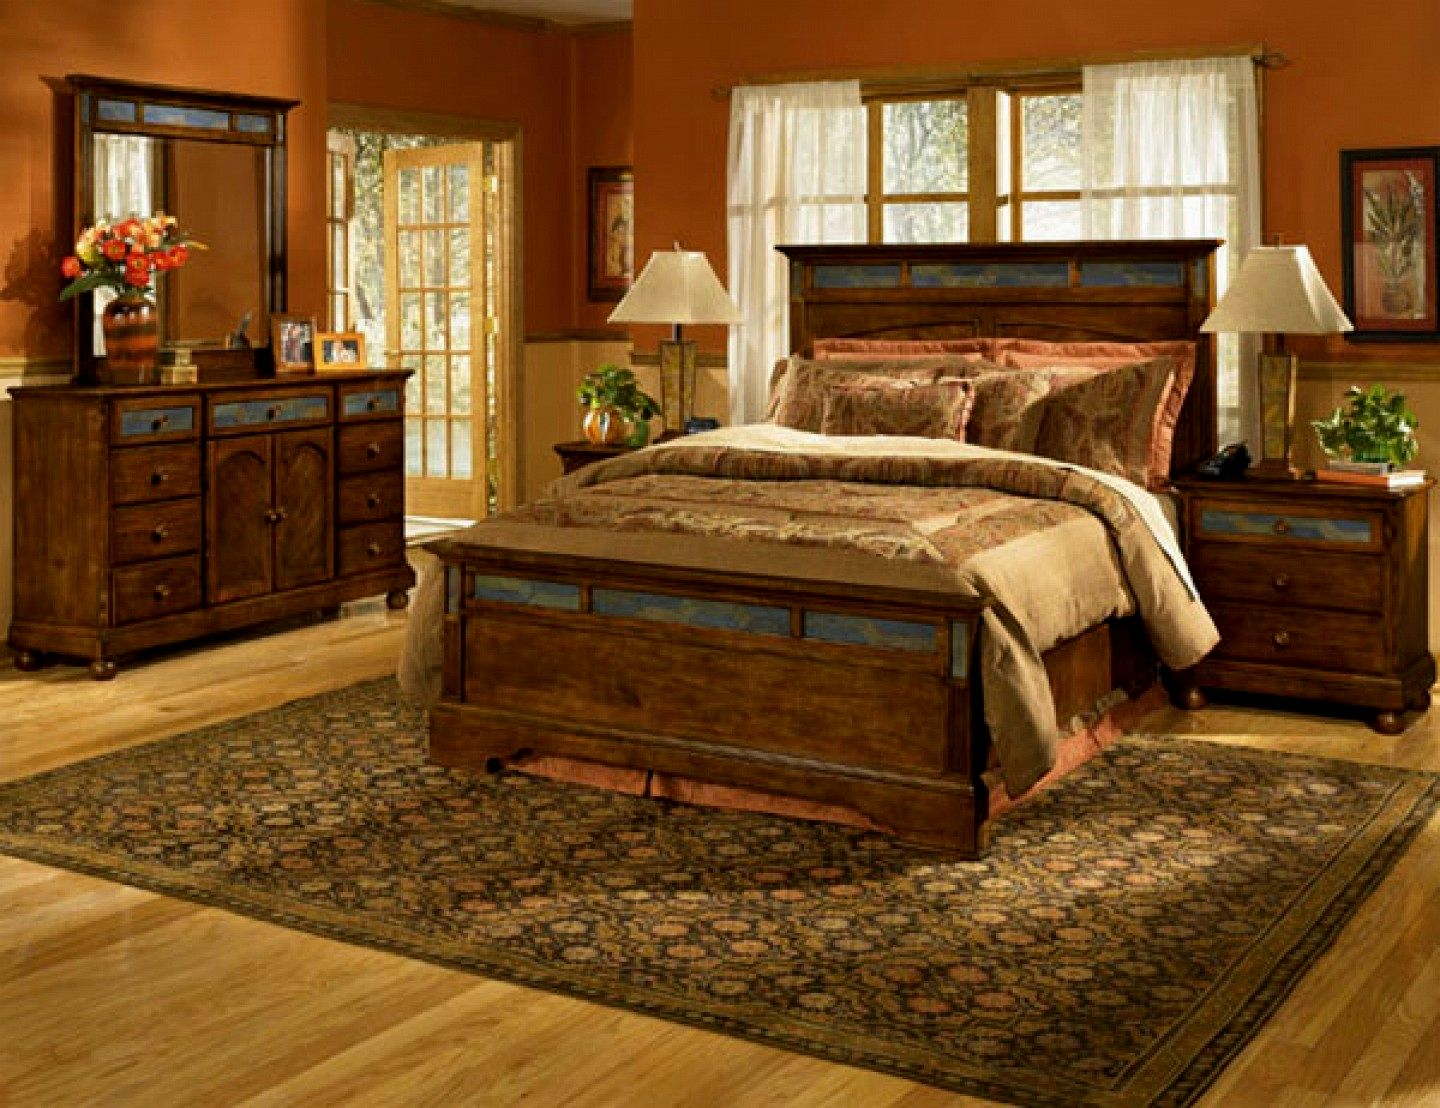 Image of: Rustic Master Bedroom Furnitures